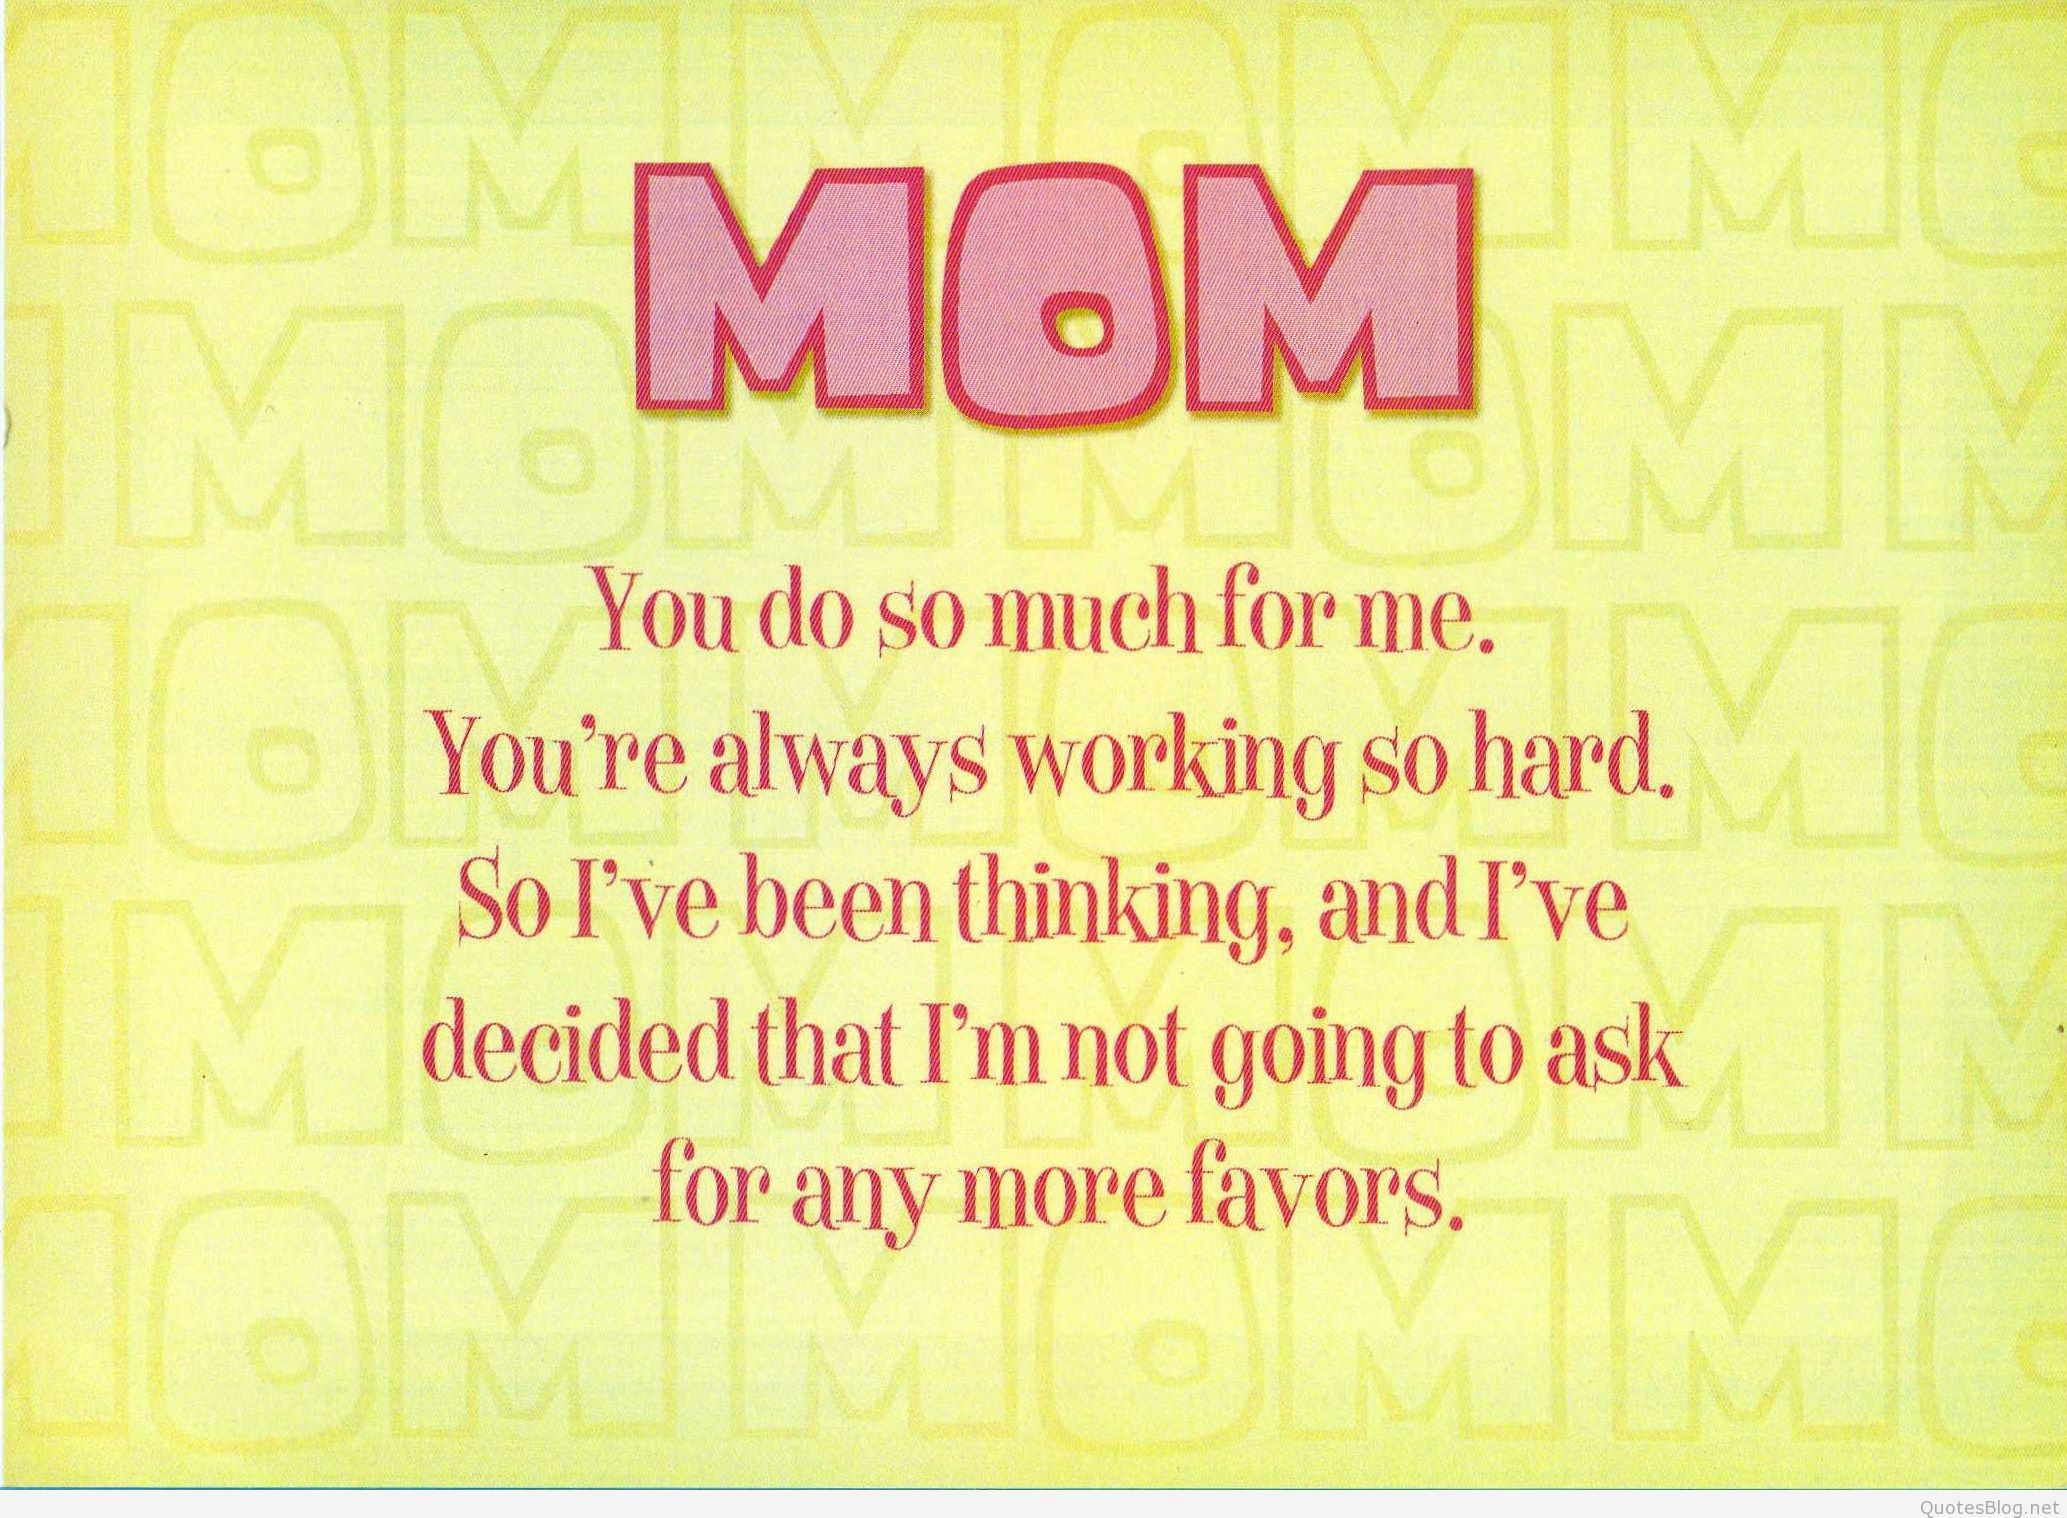 Quotes About Mother And Daughter Happy Mothers Day Pictures Tumblr  Happy Mother's Day Quotes And